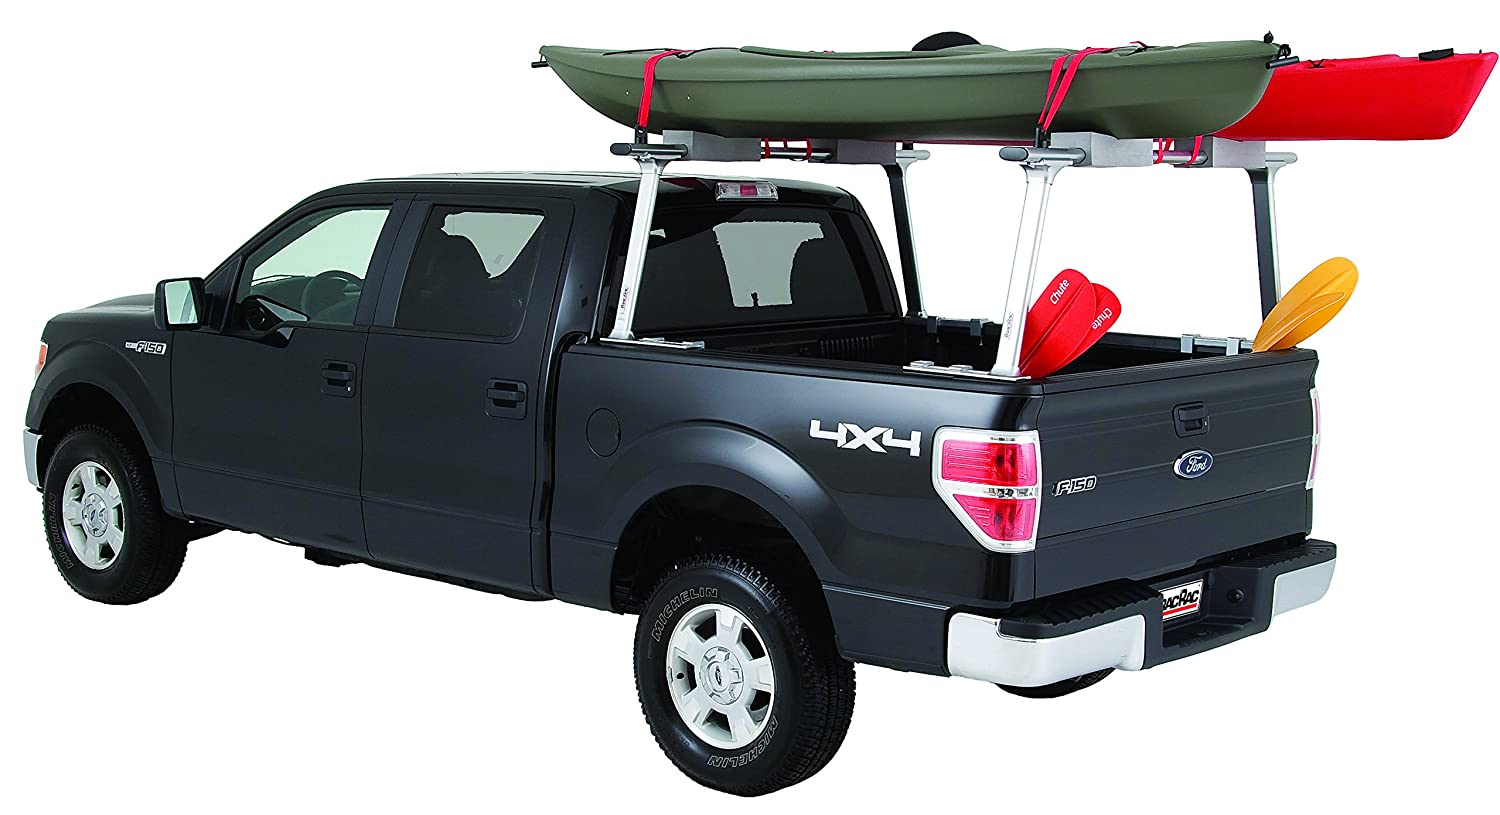 Kayak Rack for Tacoma Truck